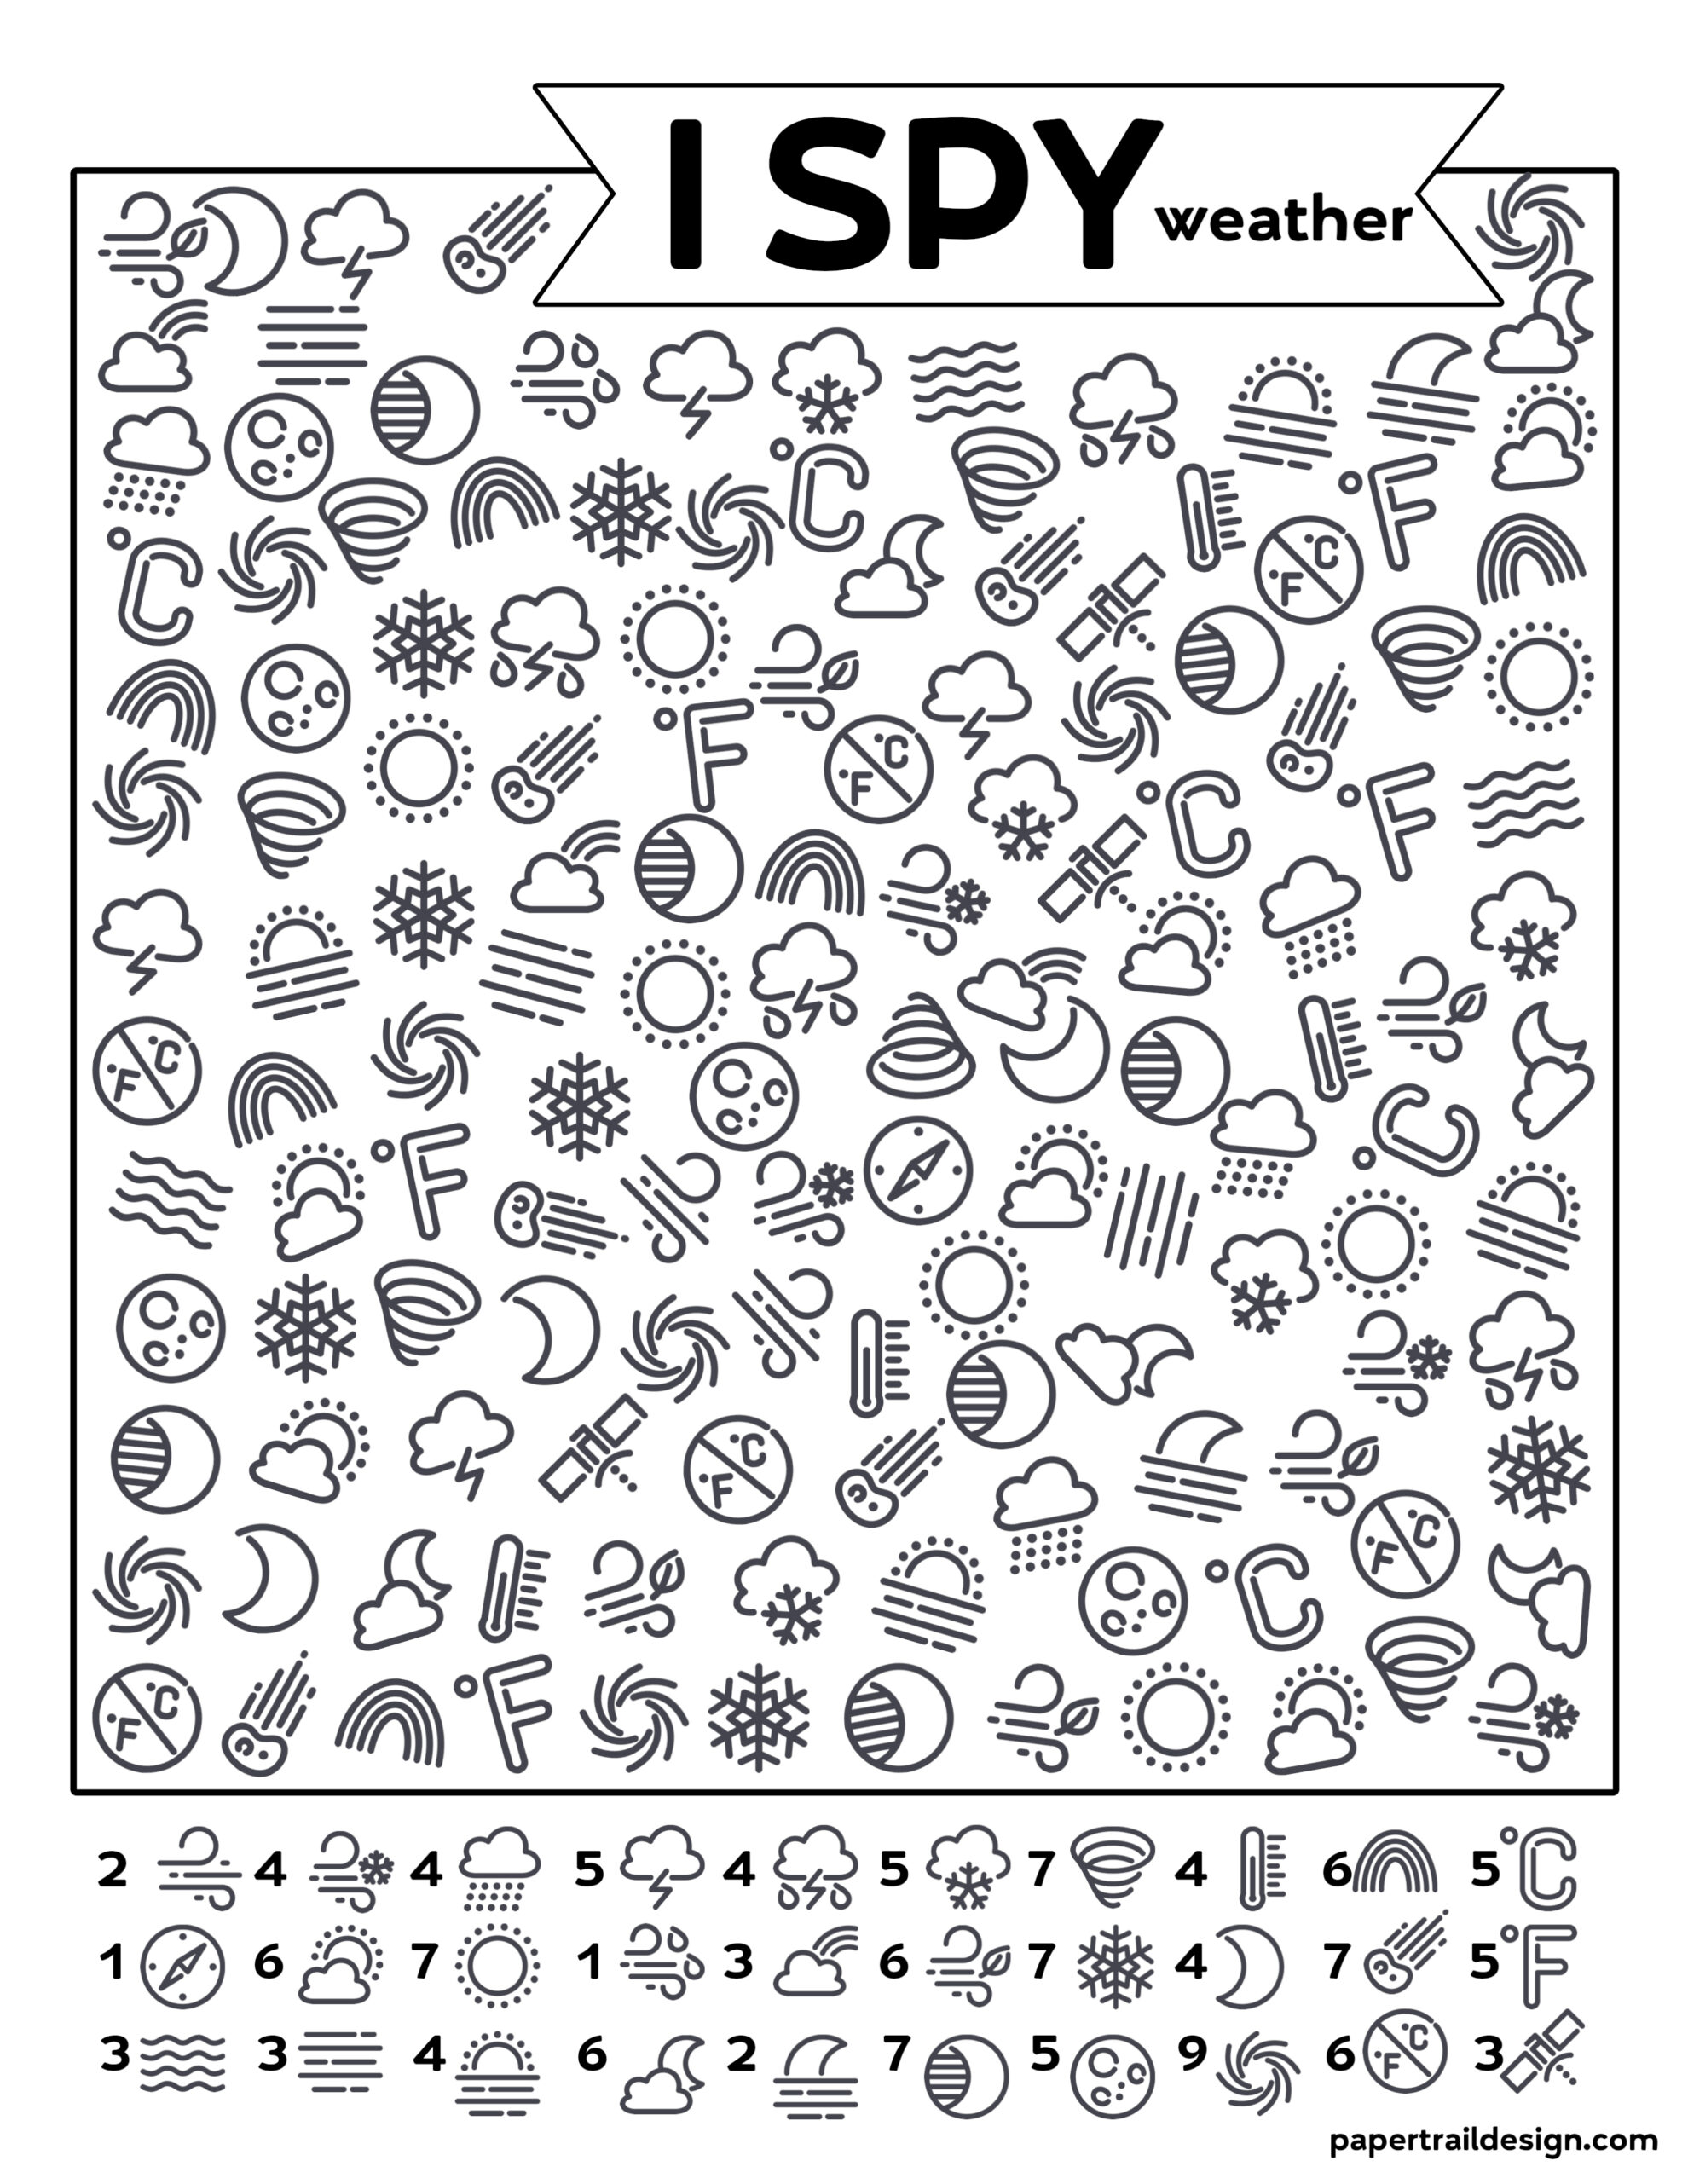 Free Printable I Spy Weather Activity